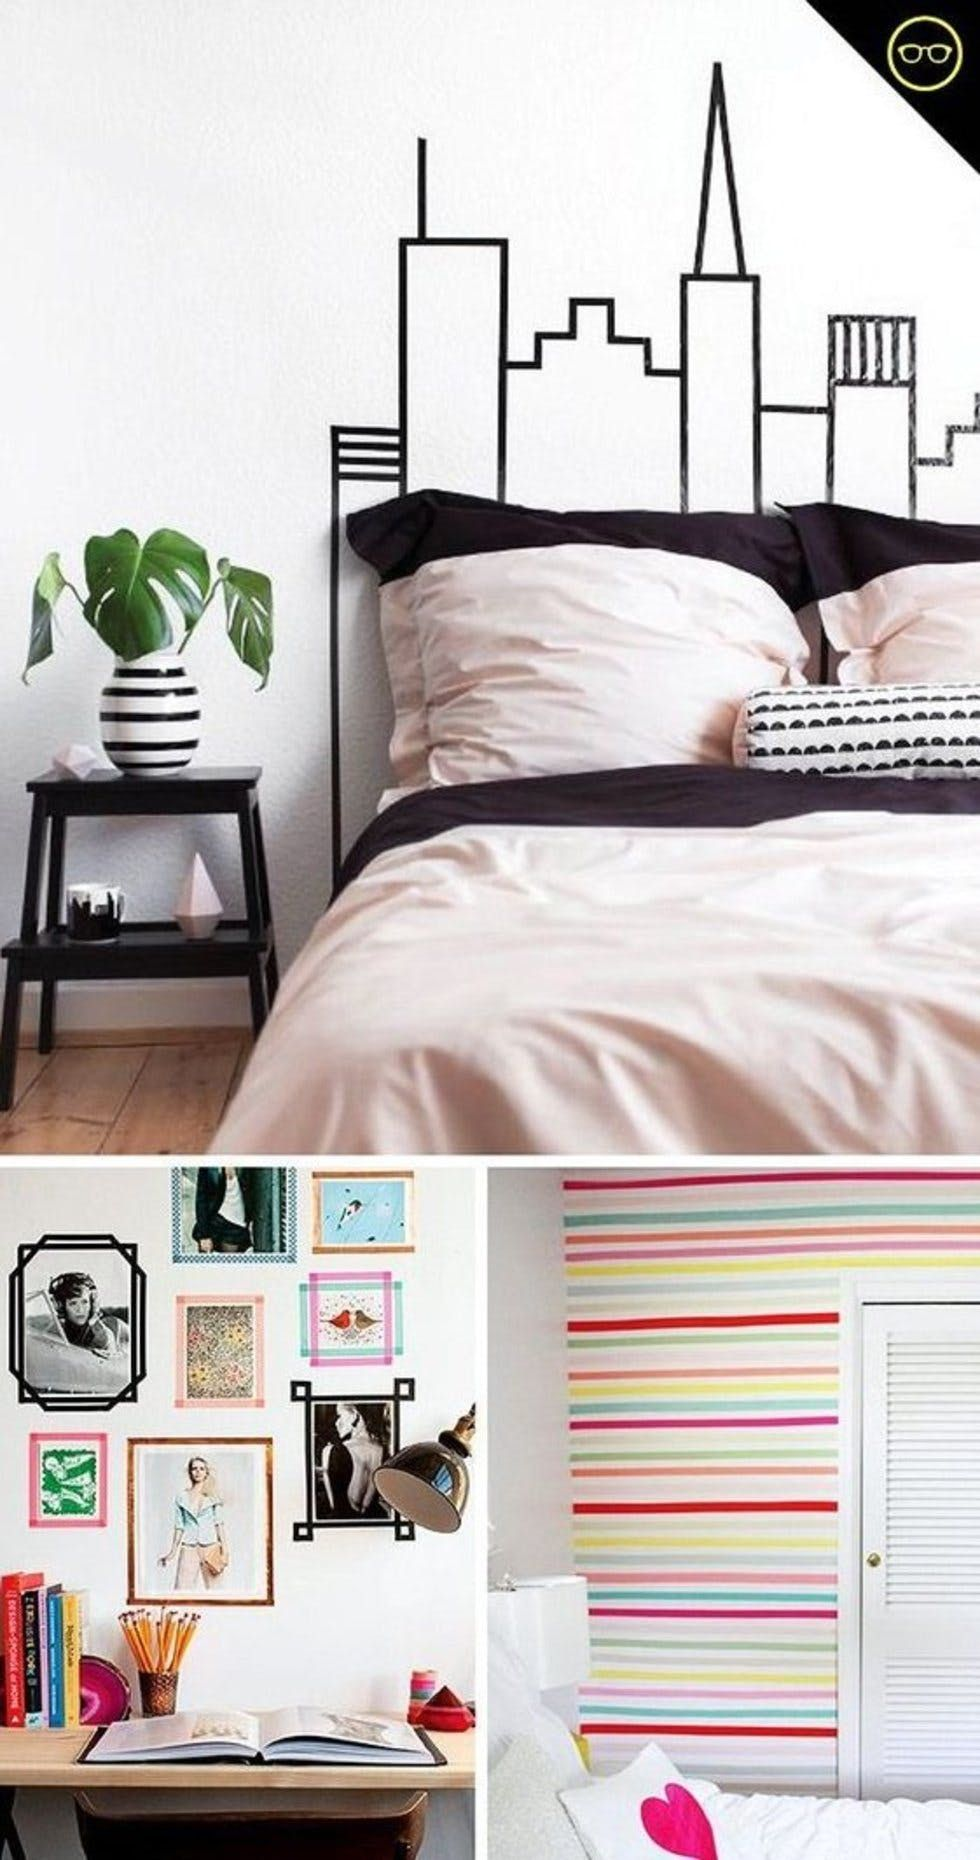 The Low-commitment Interior Design Hack Pinterest Is Going